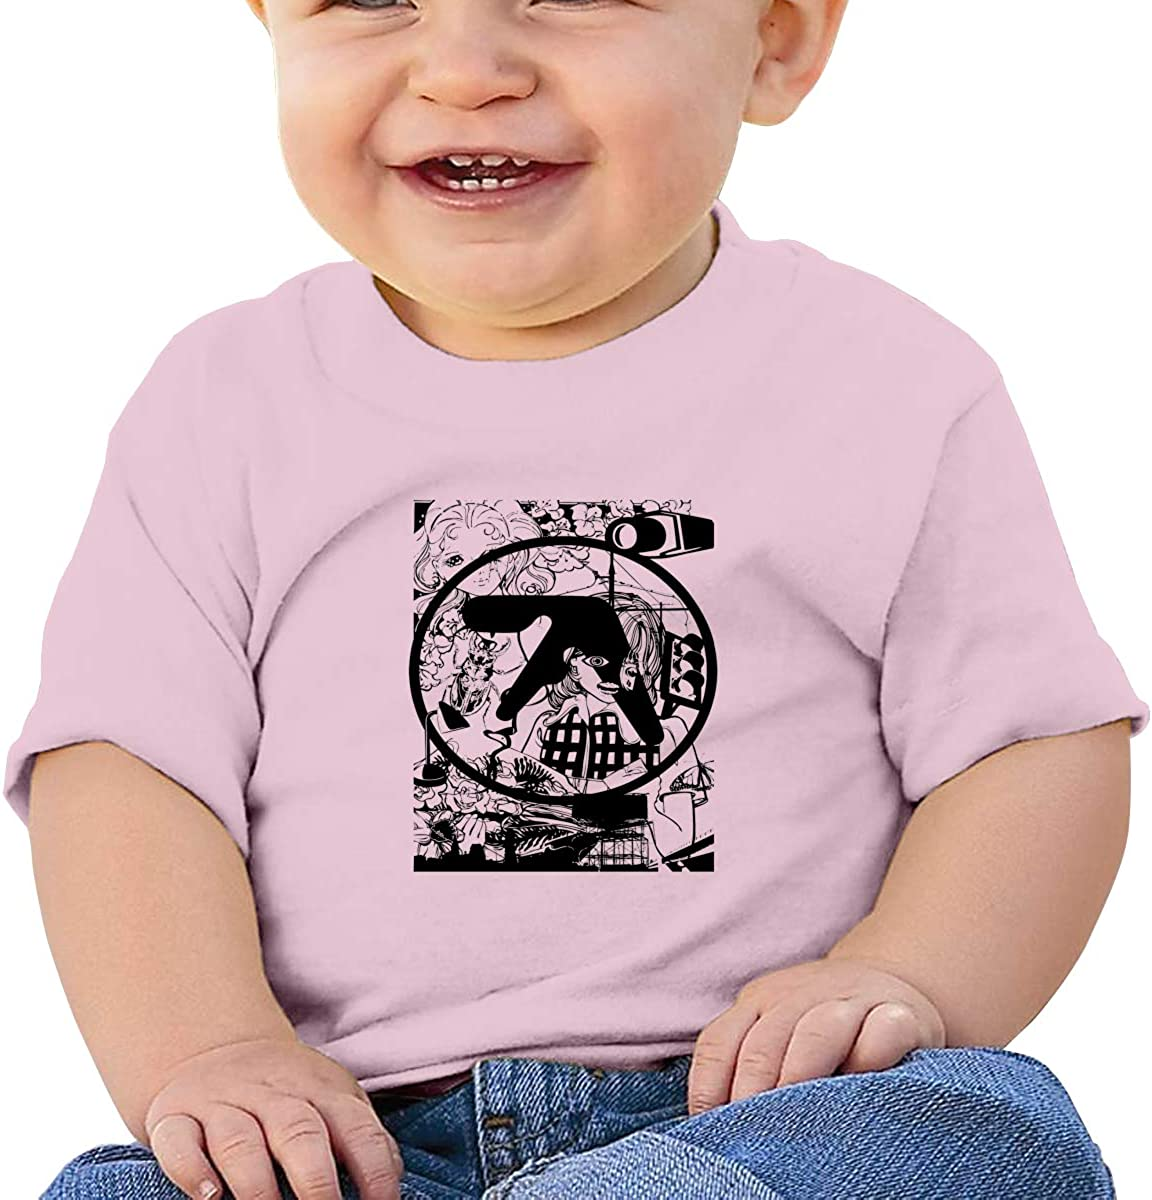 Wokeyia Baby Aphex Twin Music Black Tshirts Breathable T-Shirt for Baby Boy